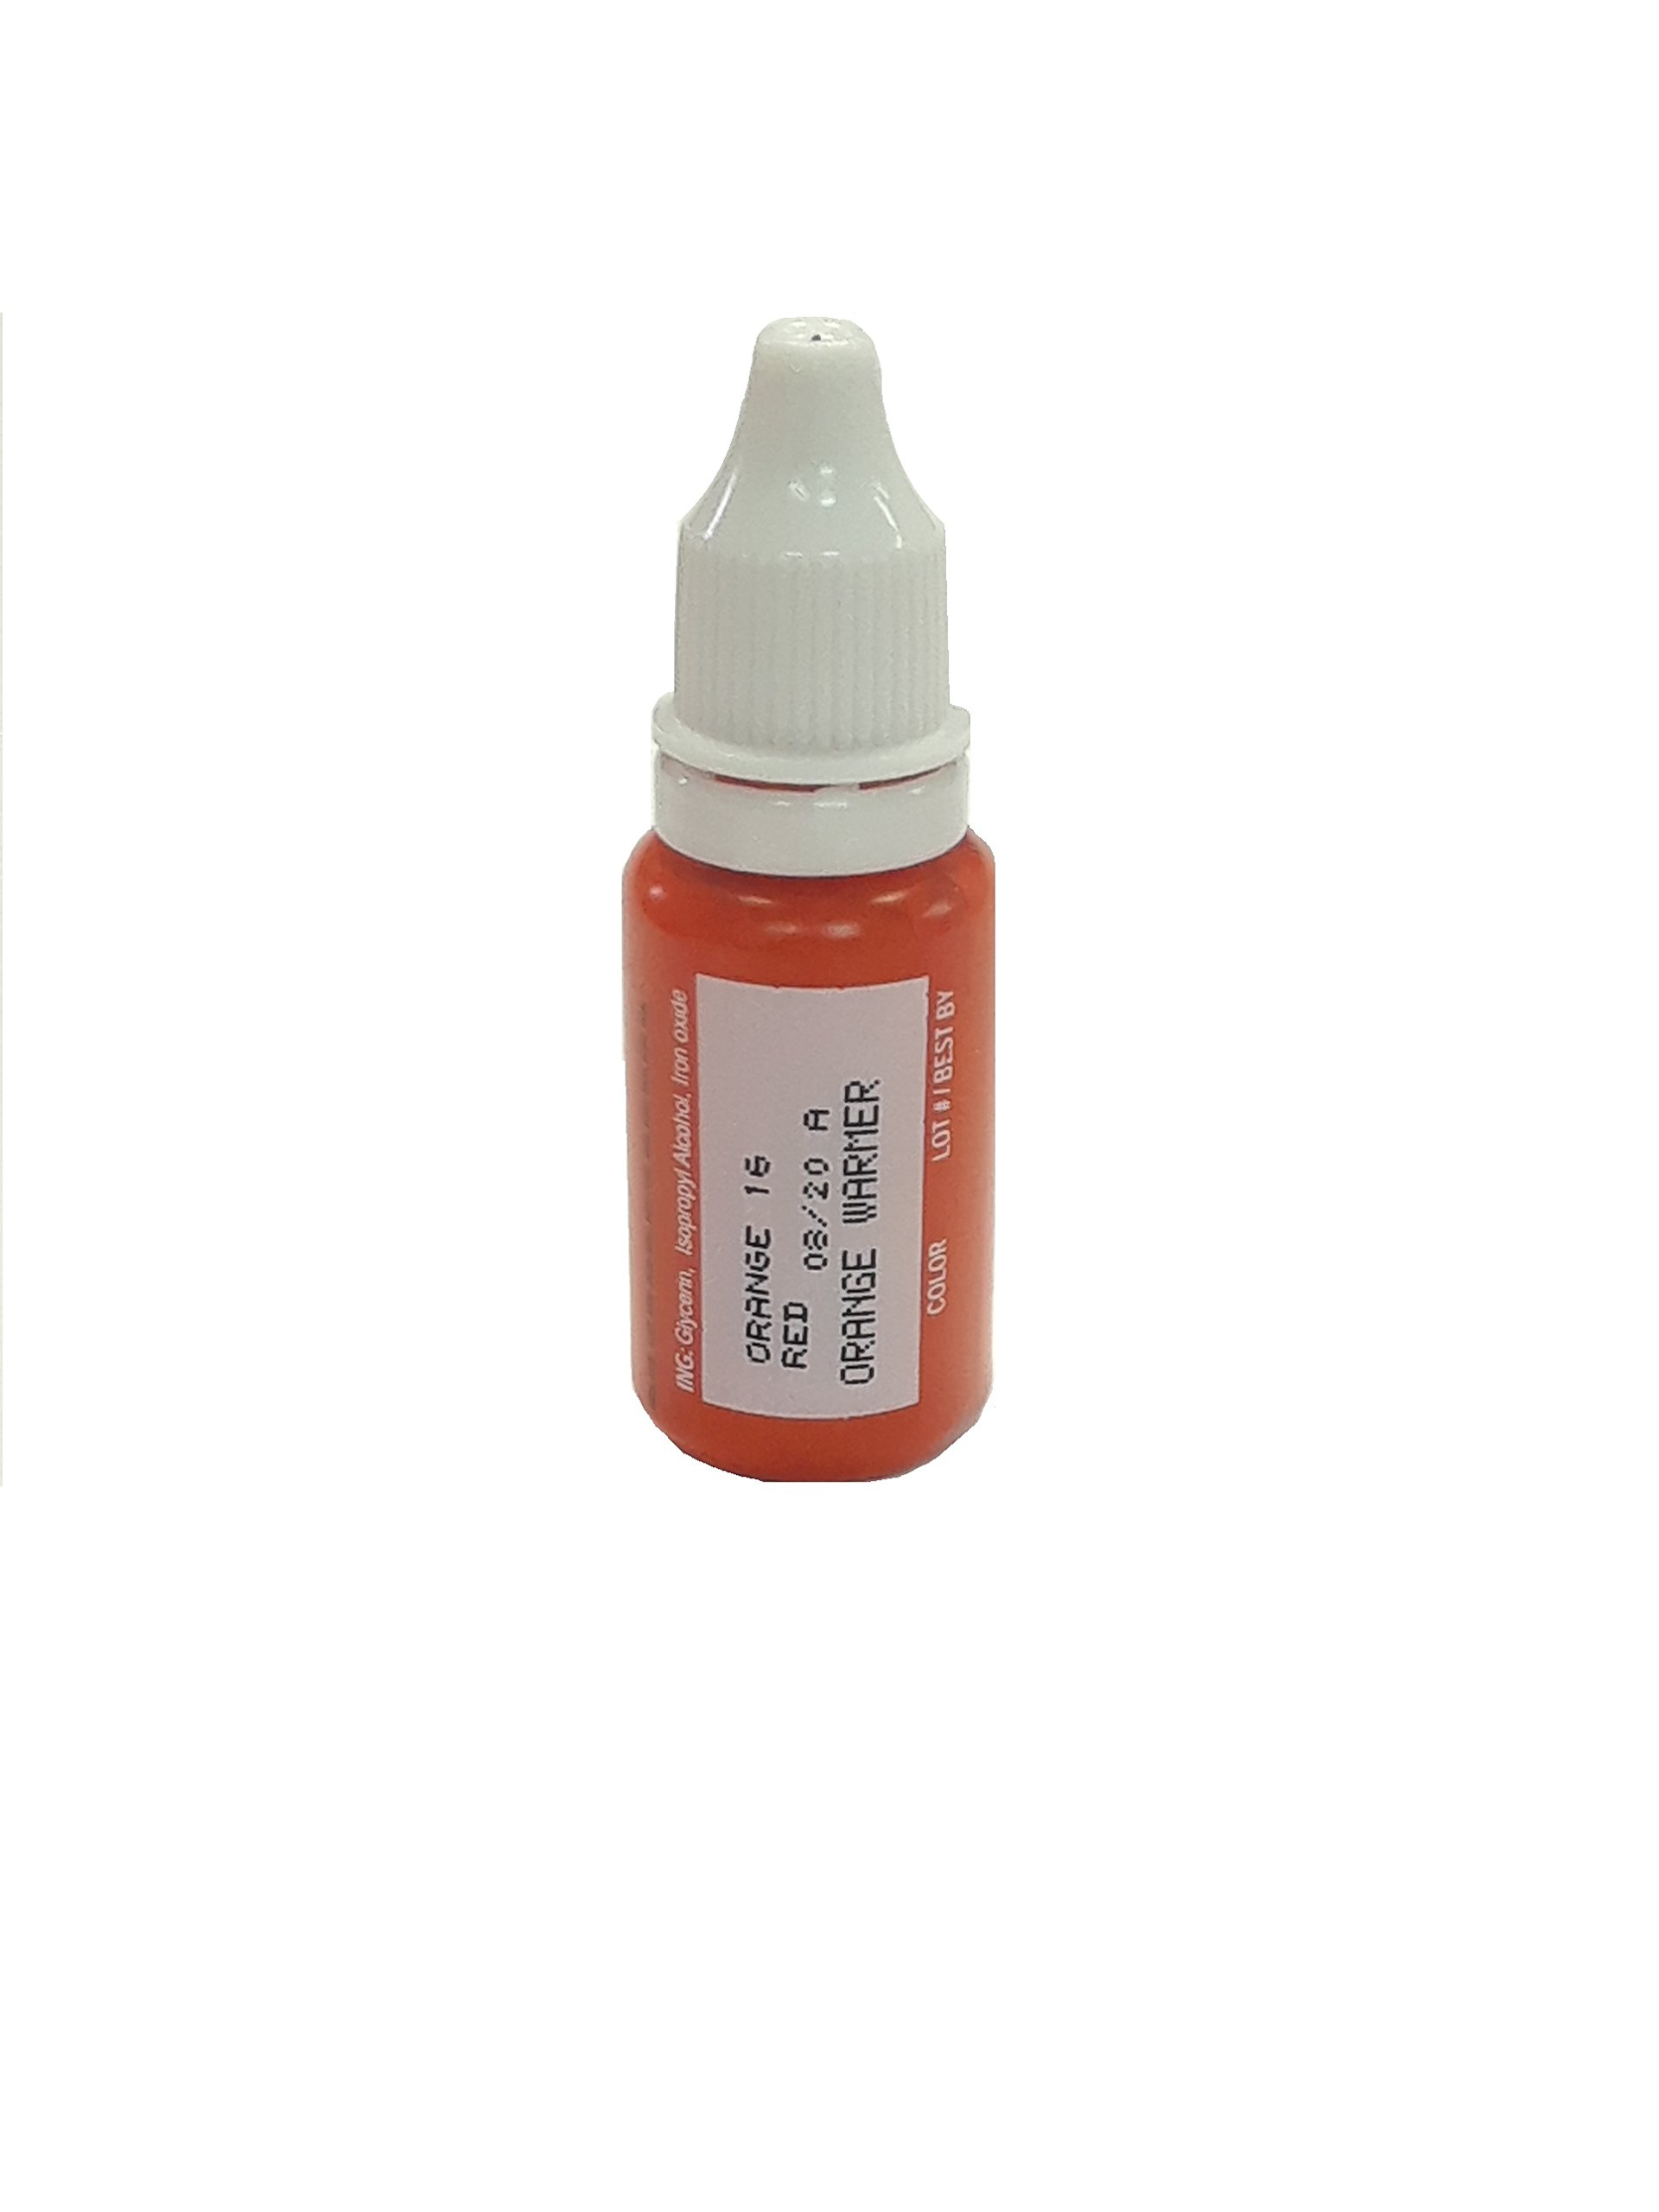 MICROBLADING supplies BioTouch Orange Warmer Microblading pigments 15ml Permanent Makeup Cosmetic Tattoo ink 1 bottle